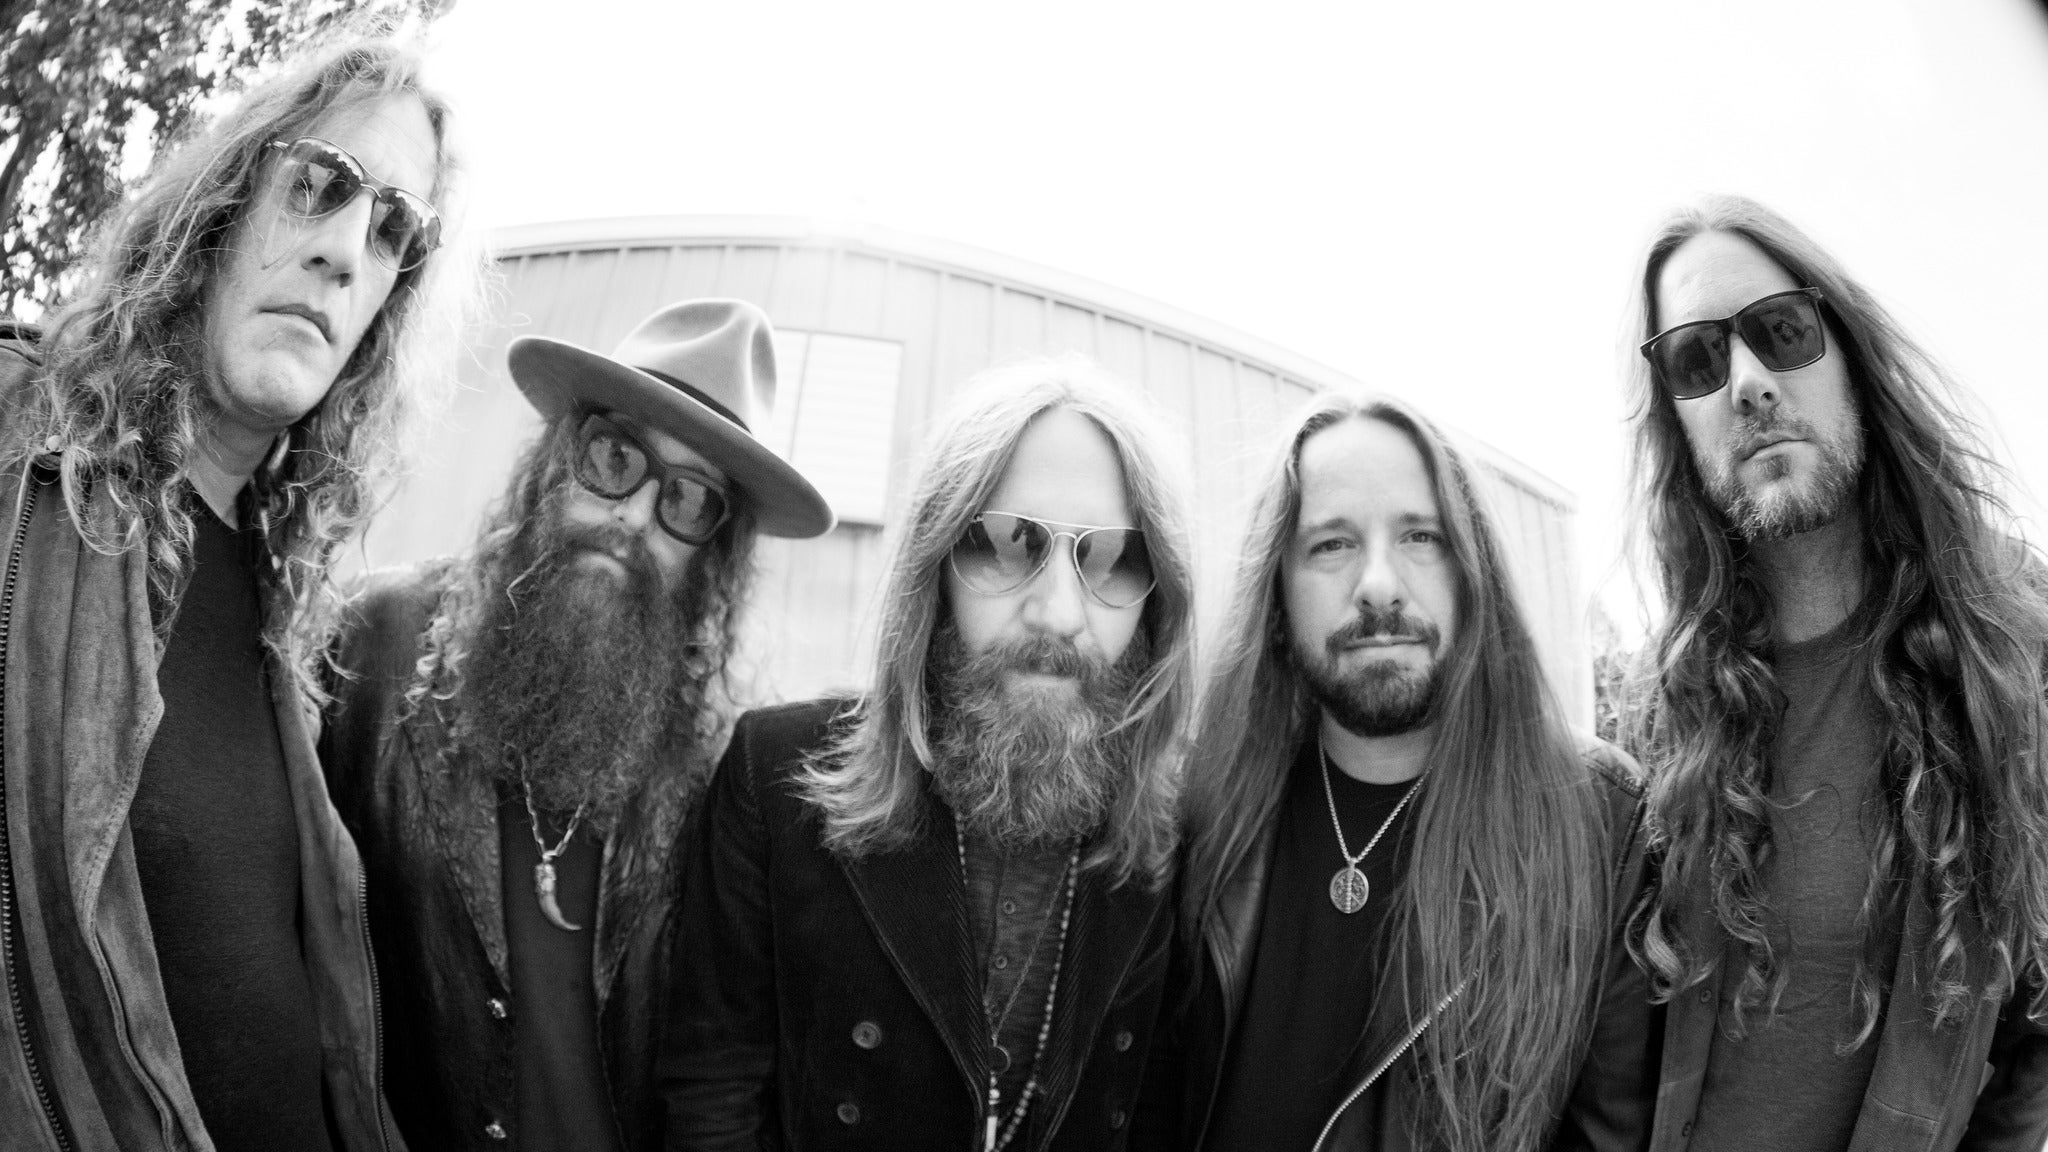 Blackberry Smoke Winter Tour 2018 at Tivoli Theatre